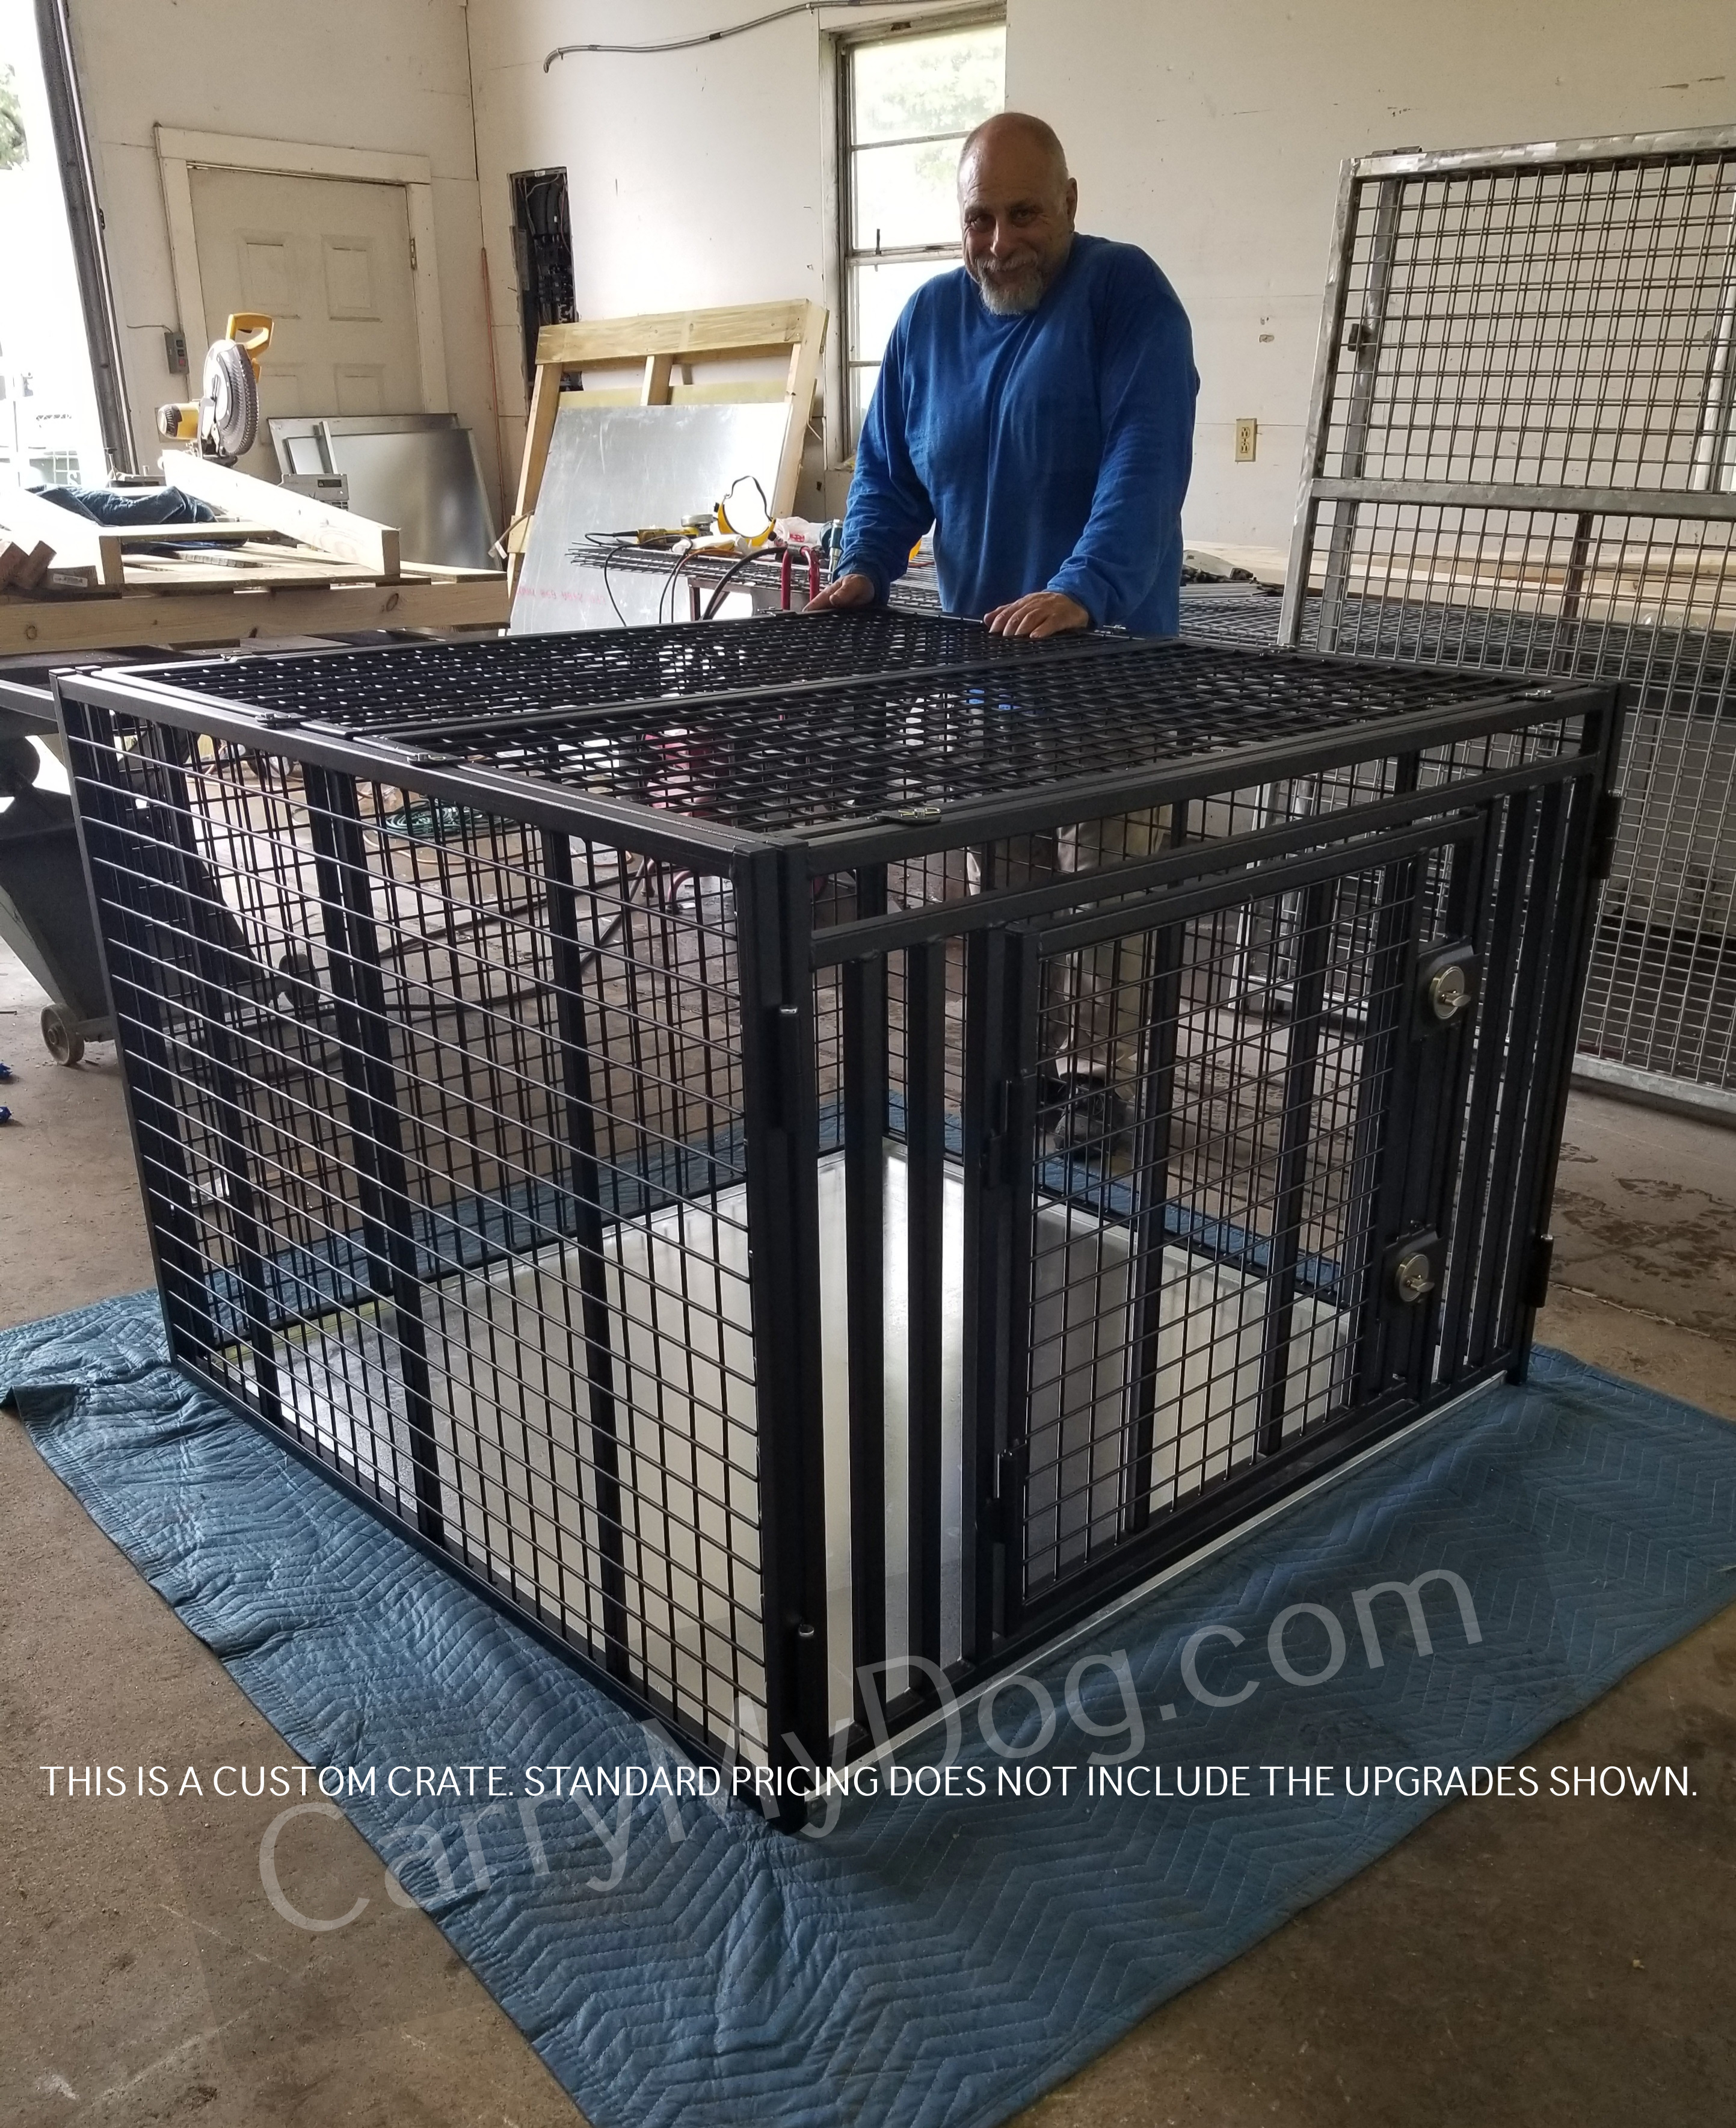 Giant Large Heavy Duty Dog crate by Xtreme dog crates